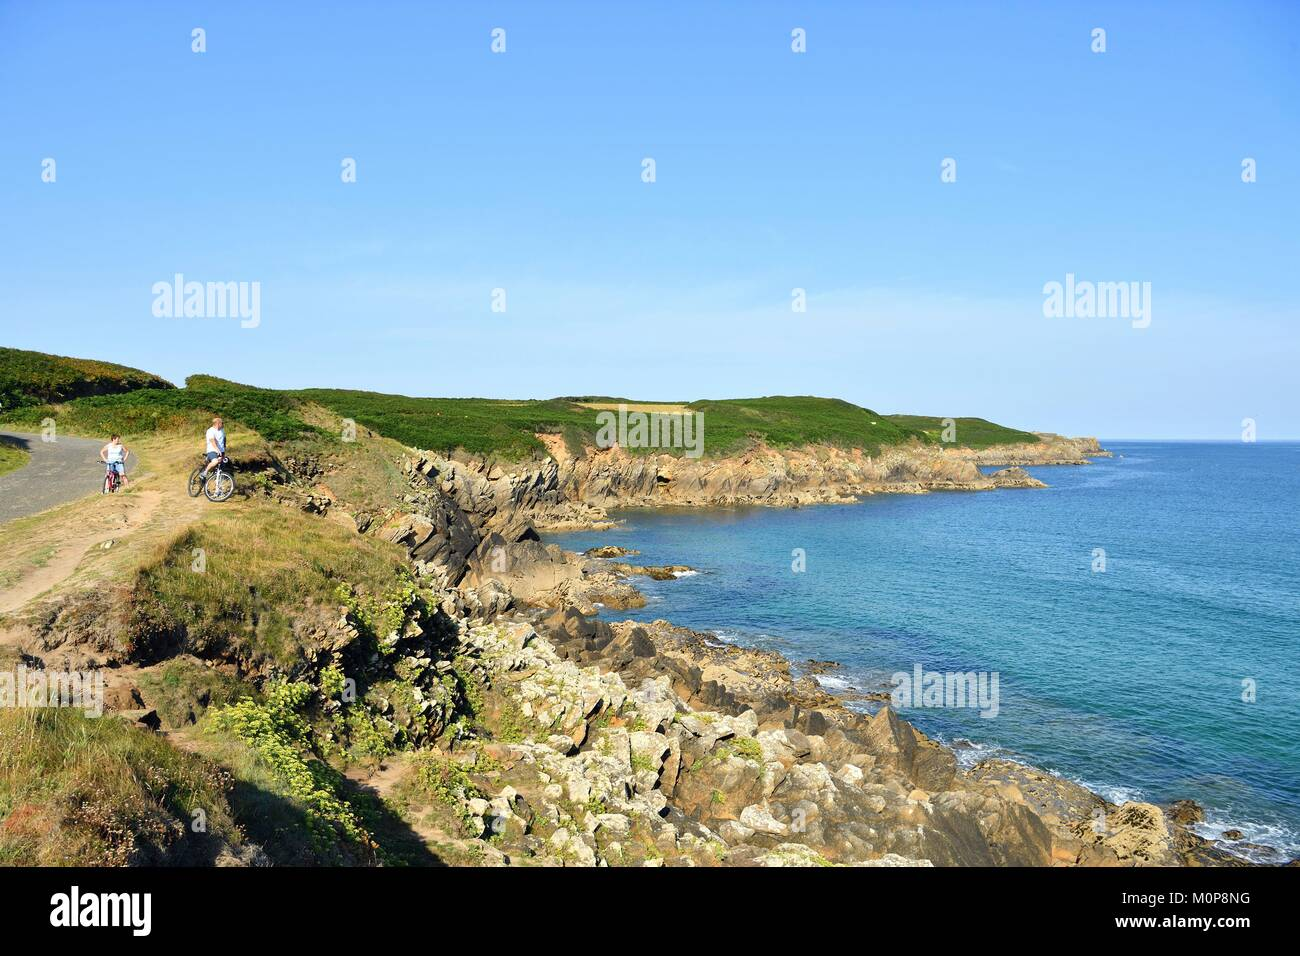 France,Finistere,Iroise sea,Armorique Regional natural park,Le Conquet,coastal path around the peninsula of Kermorvan Stock Photo